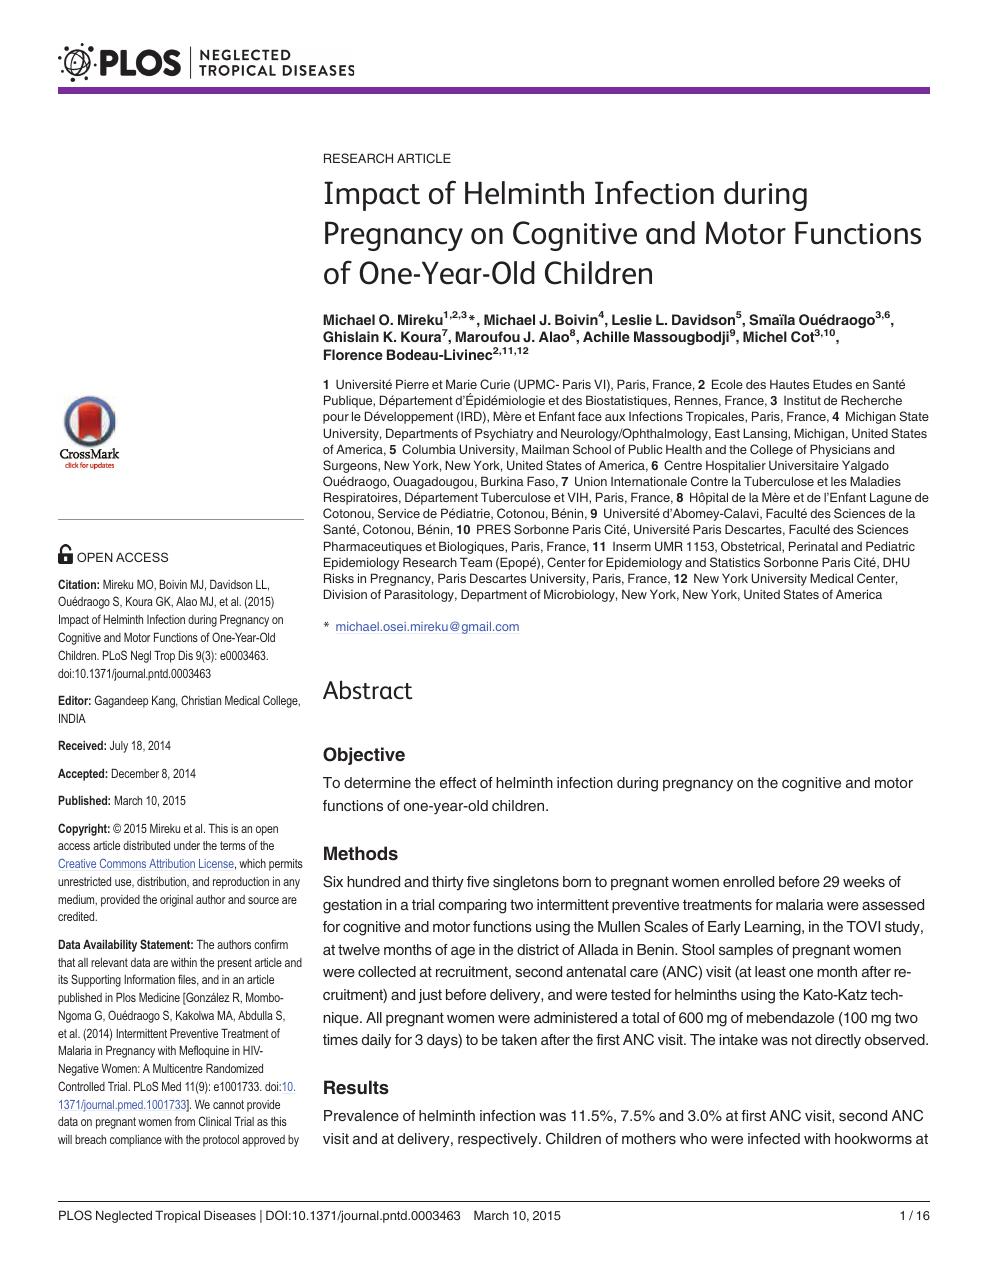 helminth infection during pregnancy